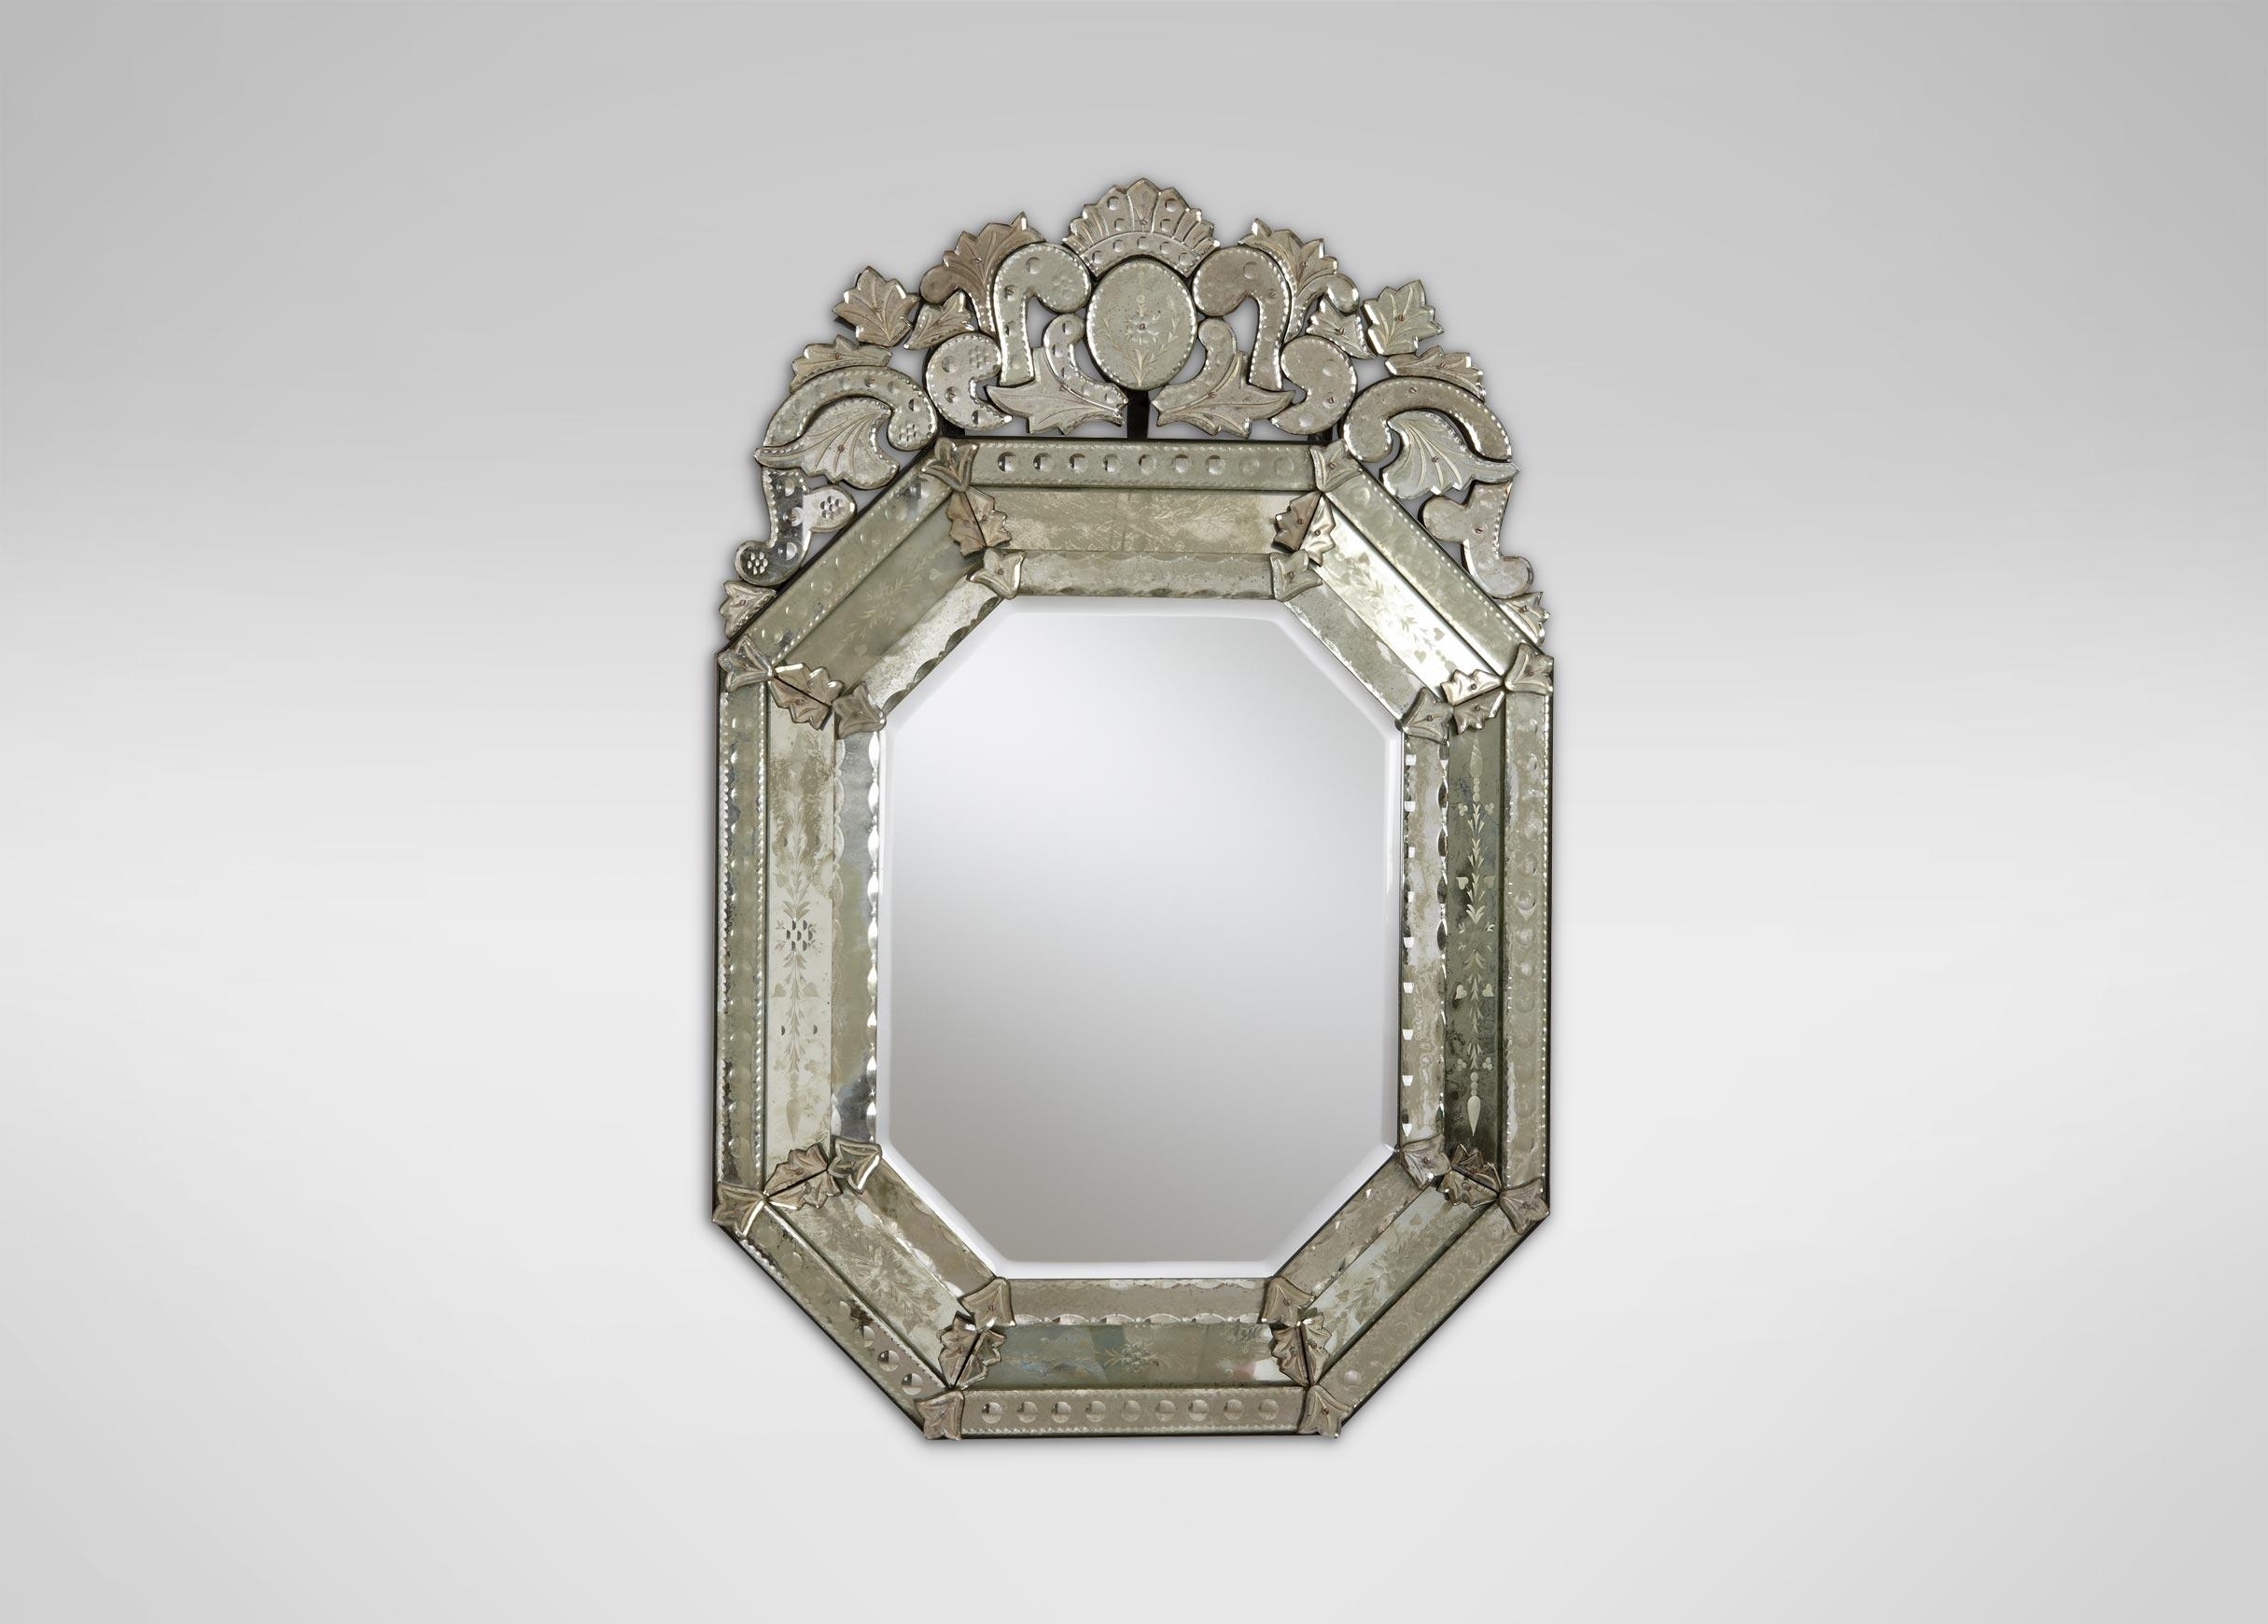 Ethan Allen Venetian Mirror 07 4055 – Classical Addiction Beaux In Small Diamond Shaped Mirrors (Image 6 of 20)